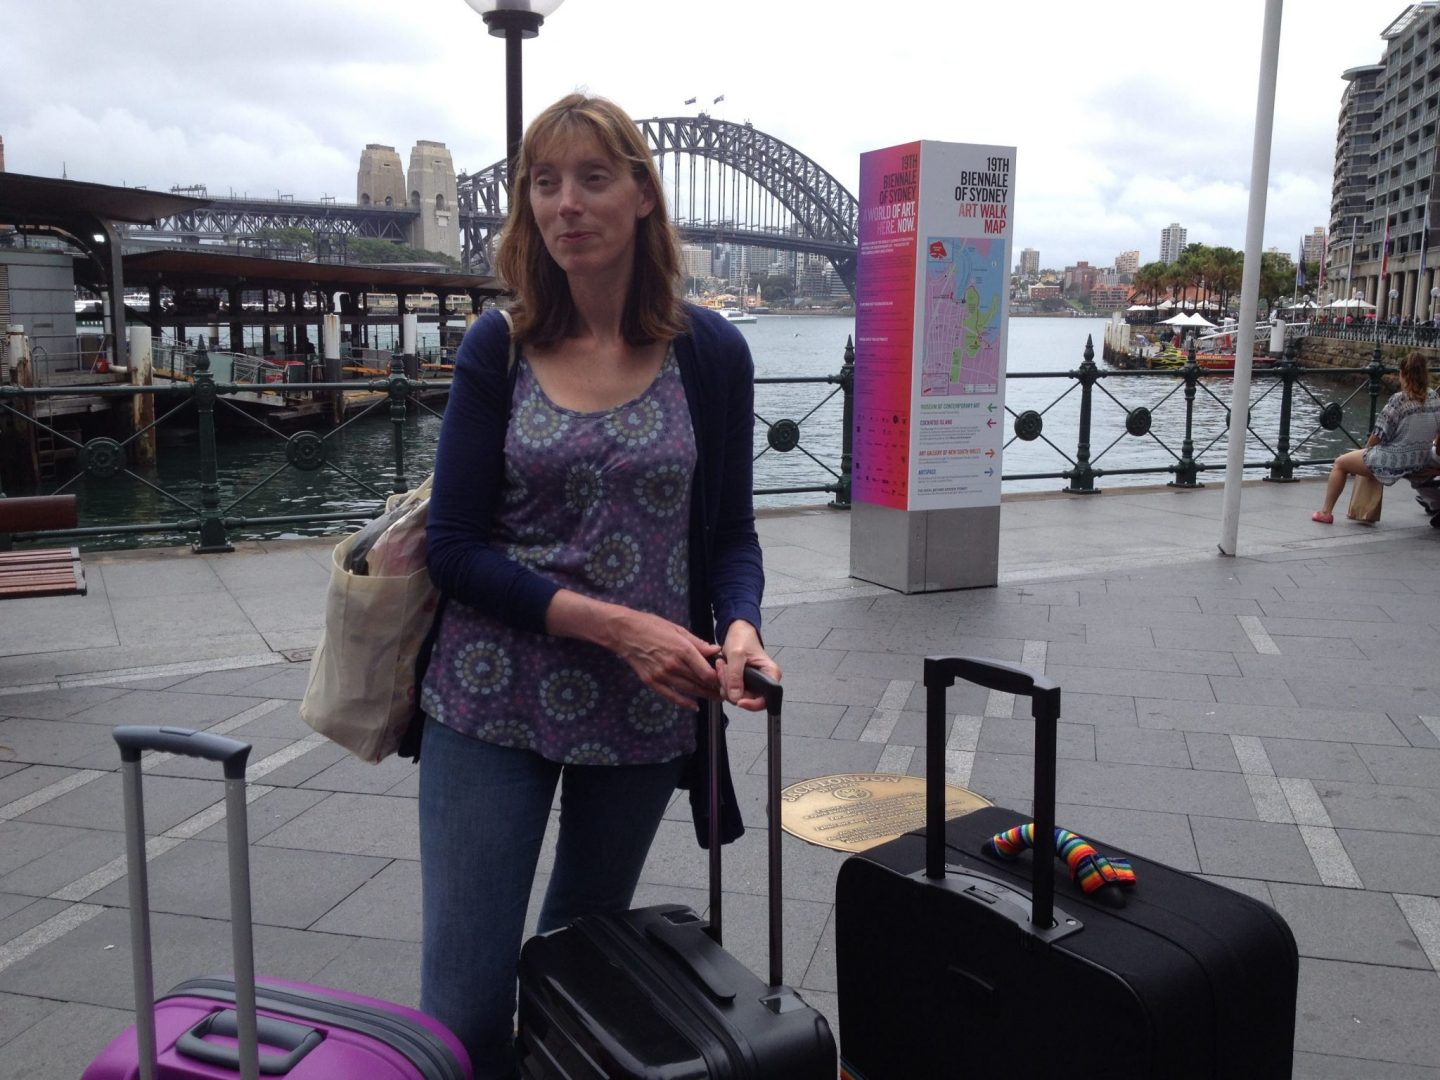 Mum with suitcases on Circular Quay, Sydney